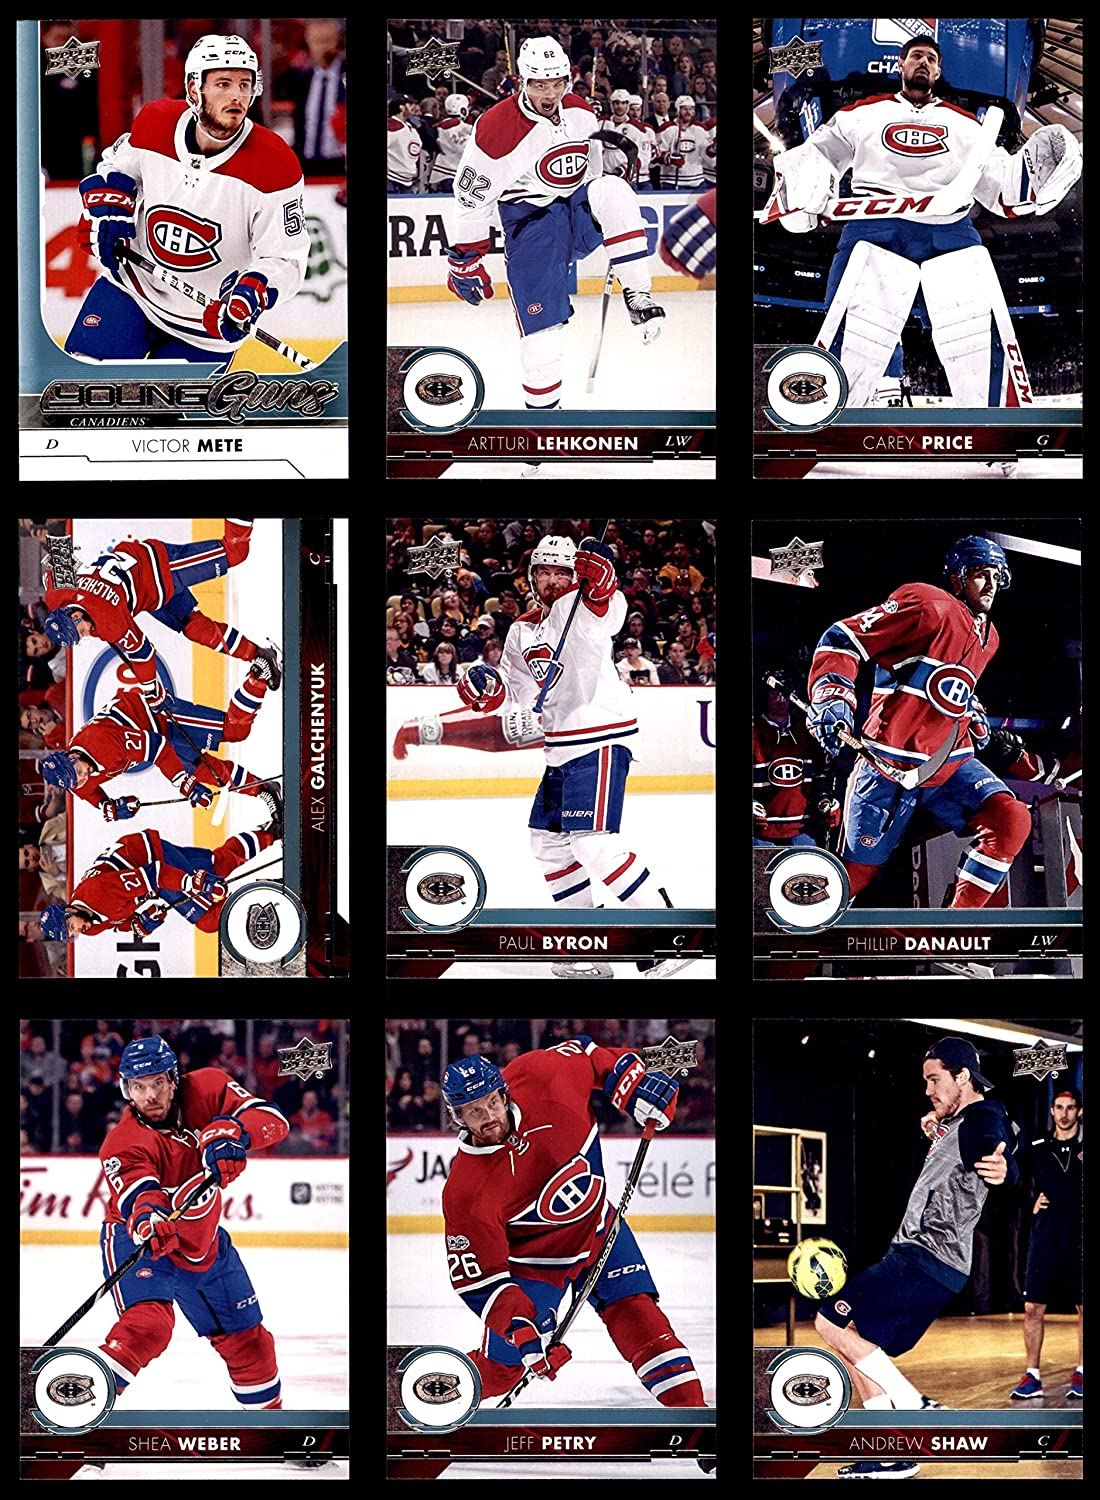 2017-18 Upper Deck Montreal Canadiens Almost Complete Team Set Montreal Canadiens (Baseball Set) Dean's Cards 8 - NM/MT Canadiens 91AjyL2NTML